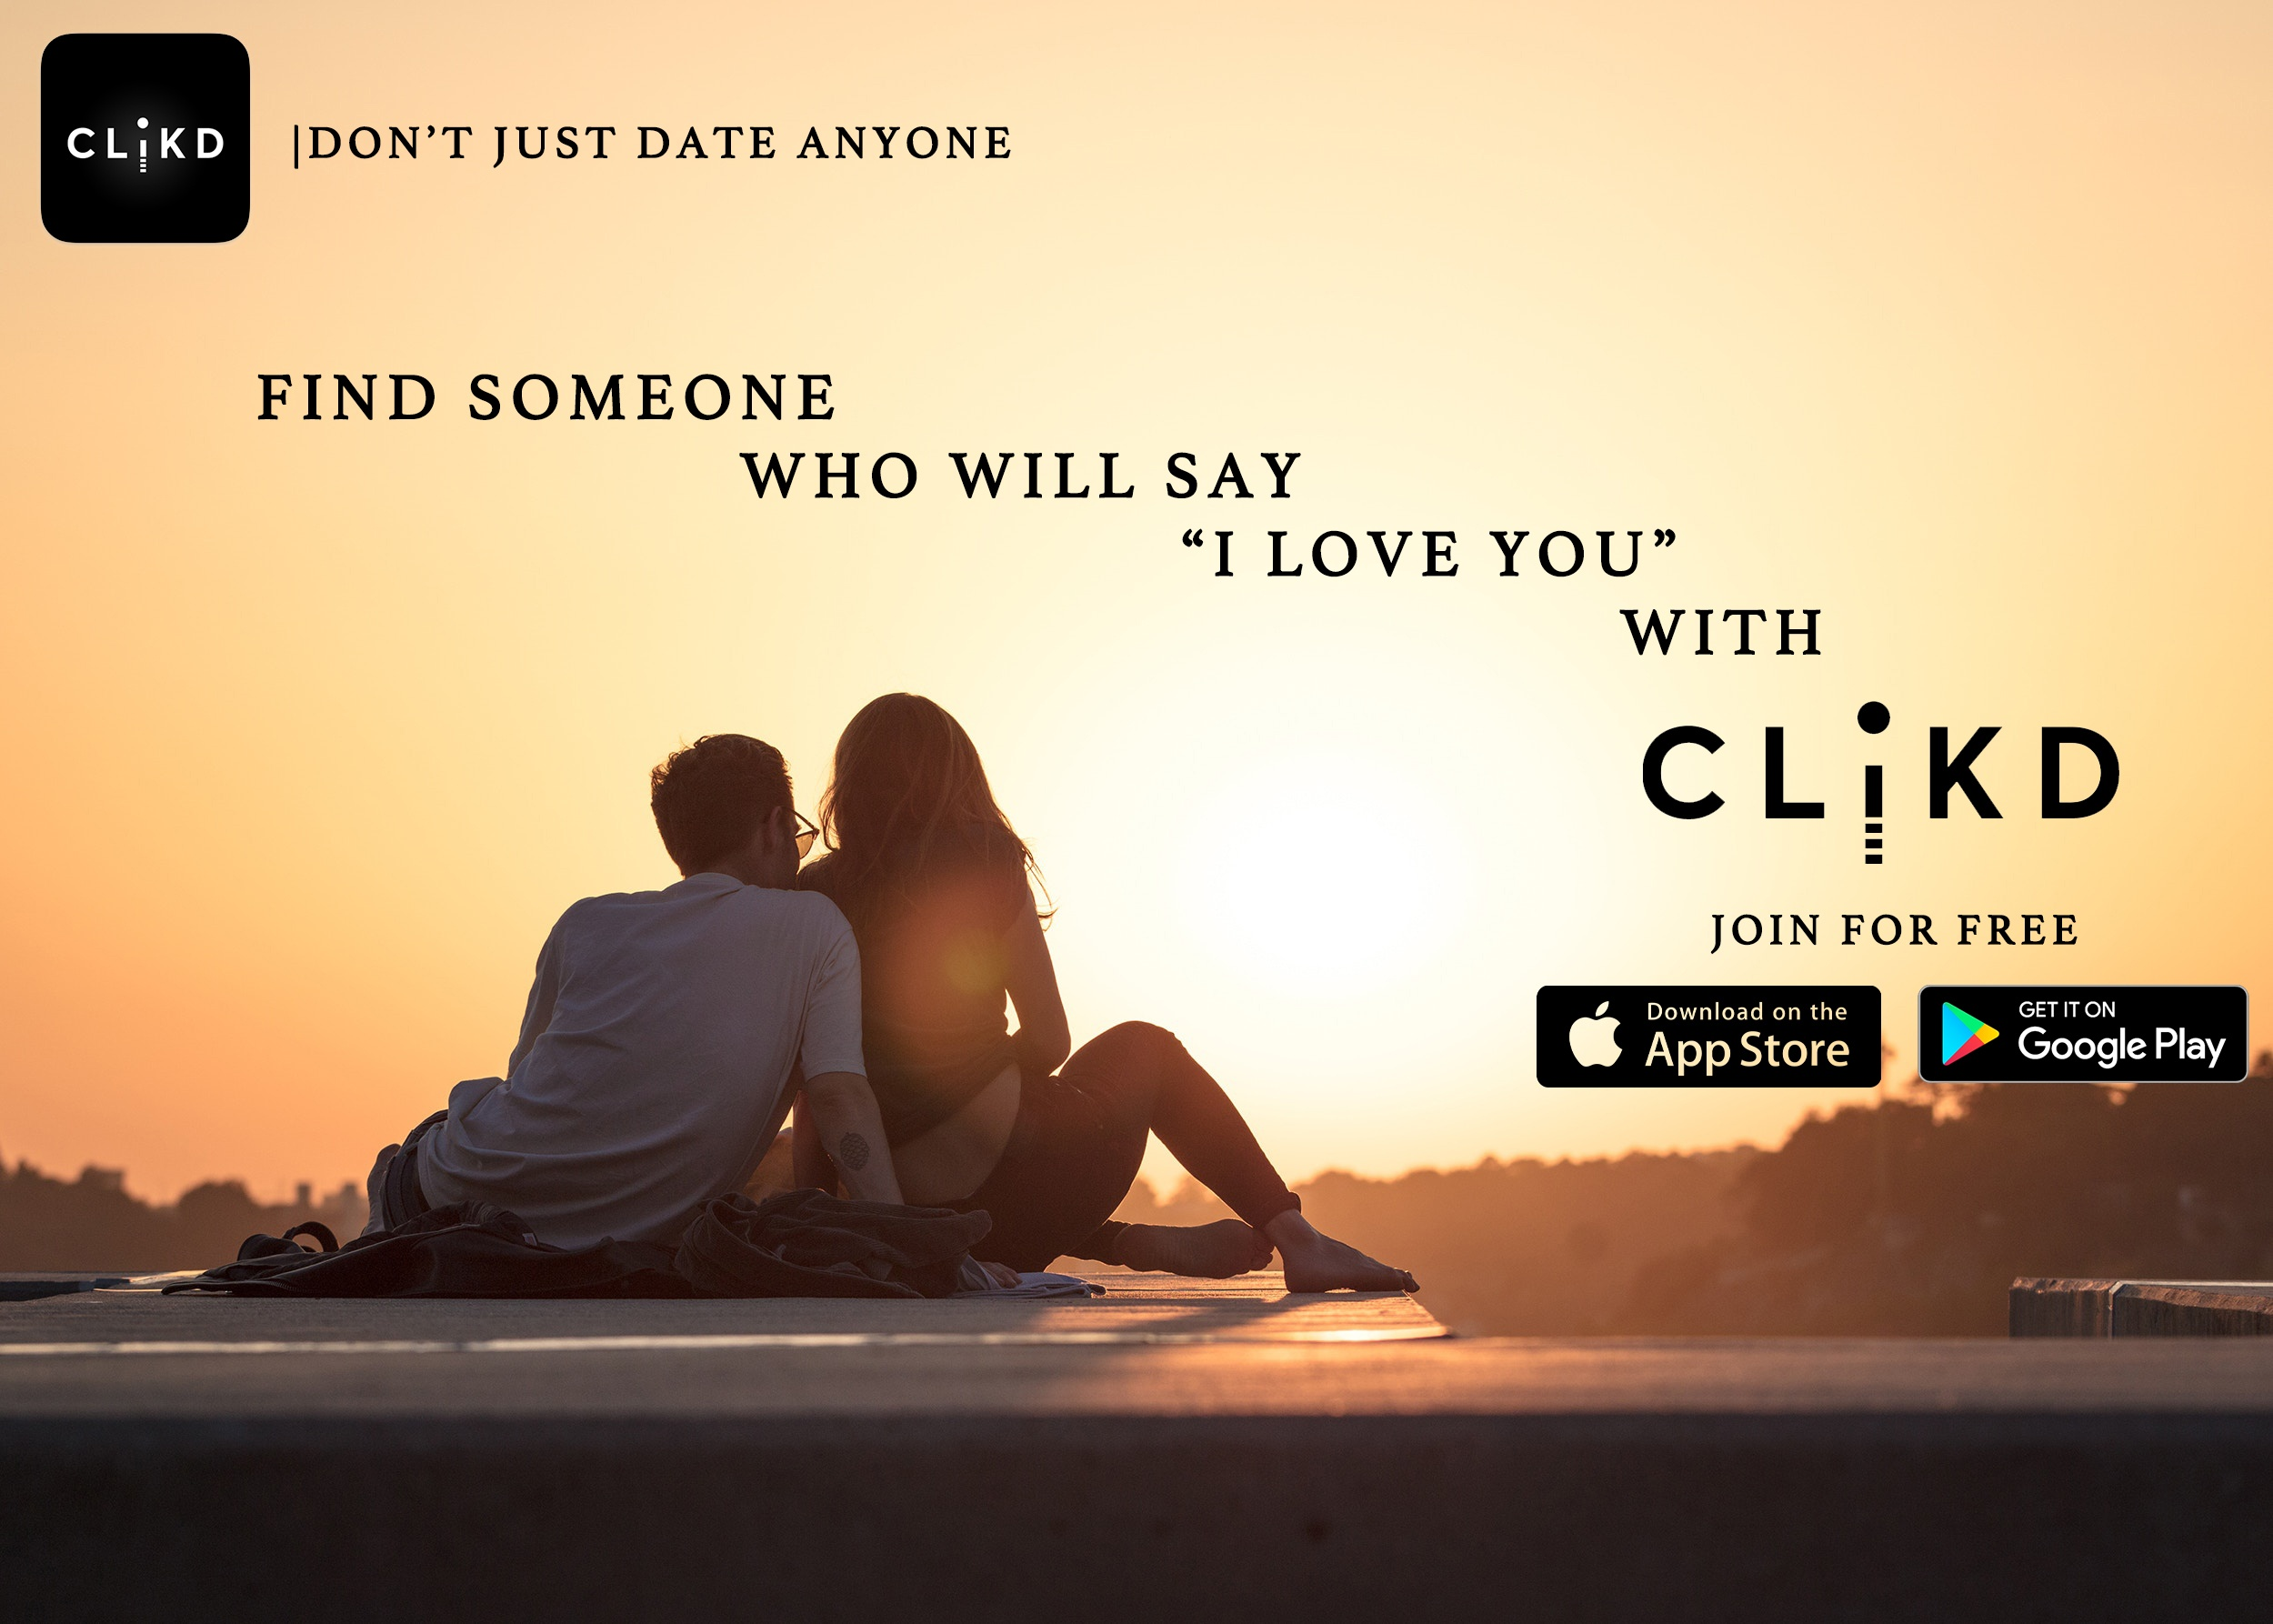 love on clikd